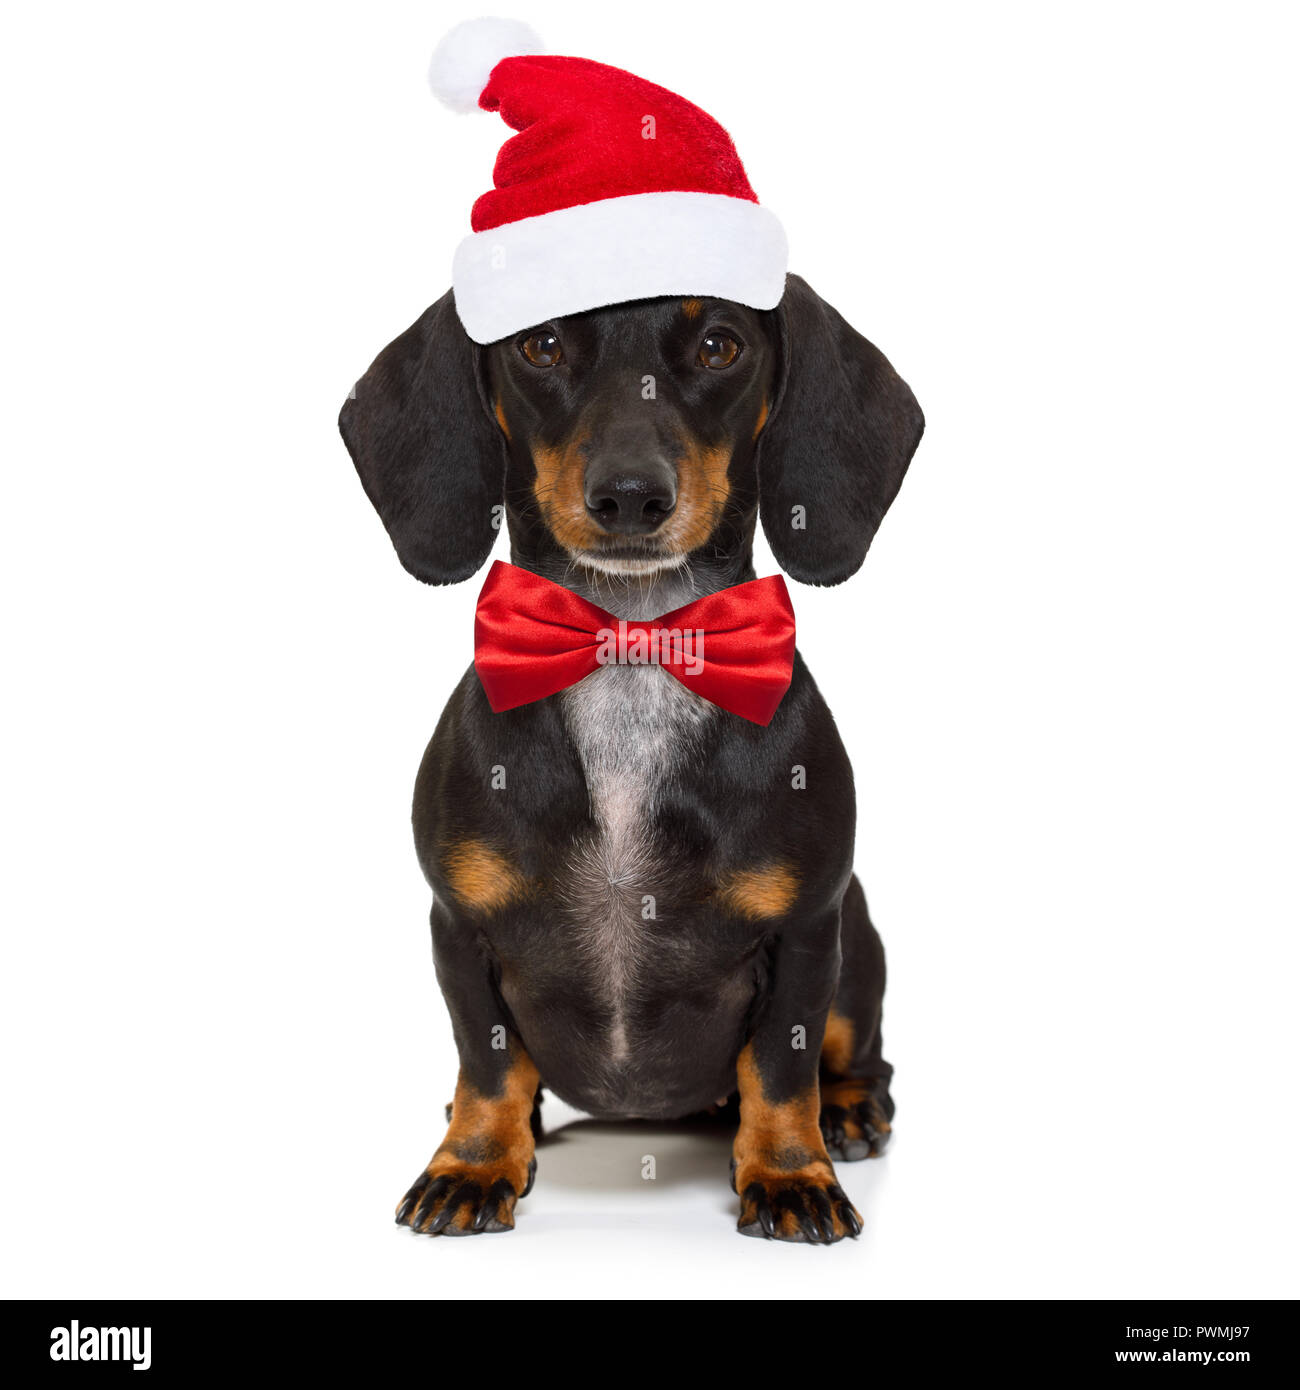 Funny Dachshund Sausage Santa Claus Dog On Christmas Season Holidays Wearing Red Holiday Hat Isolated On White Background Stock Photo Alamy